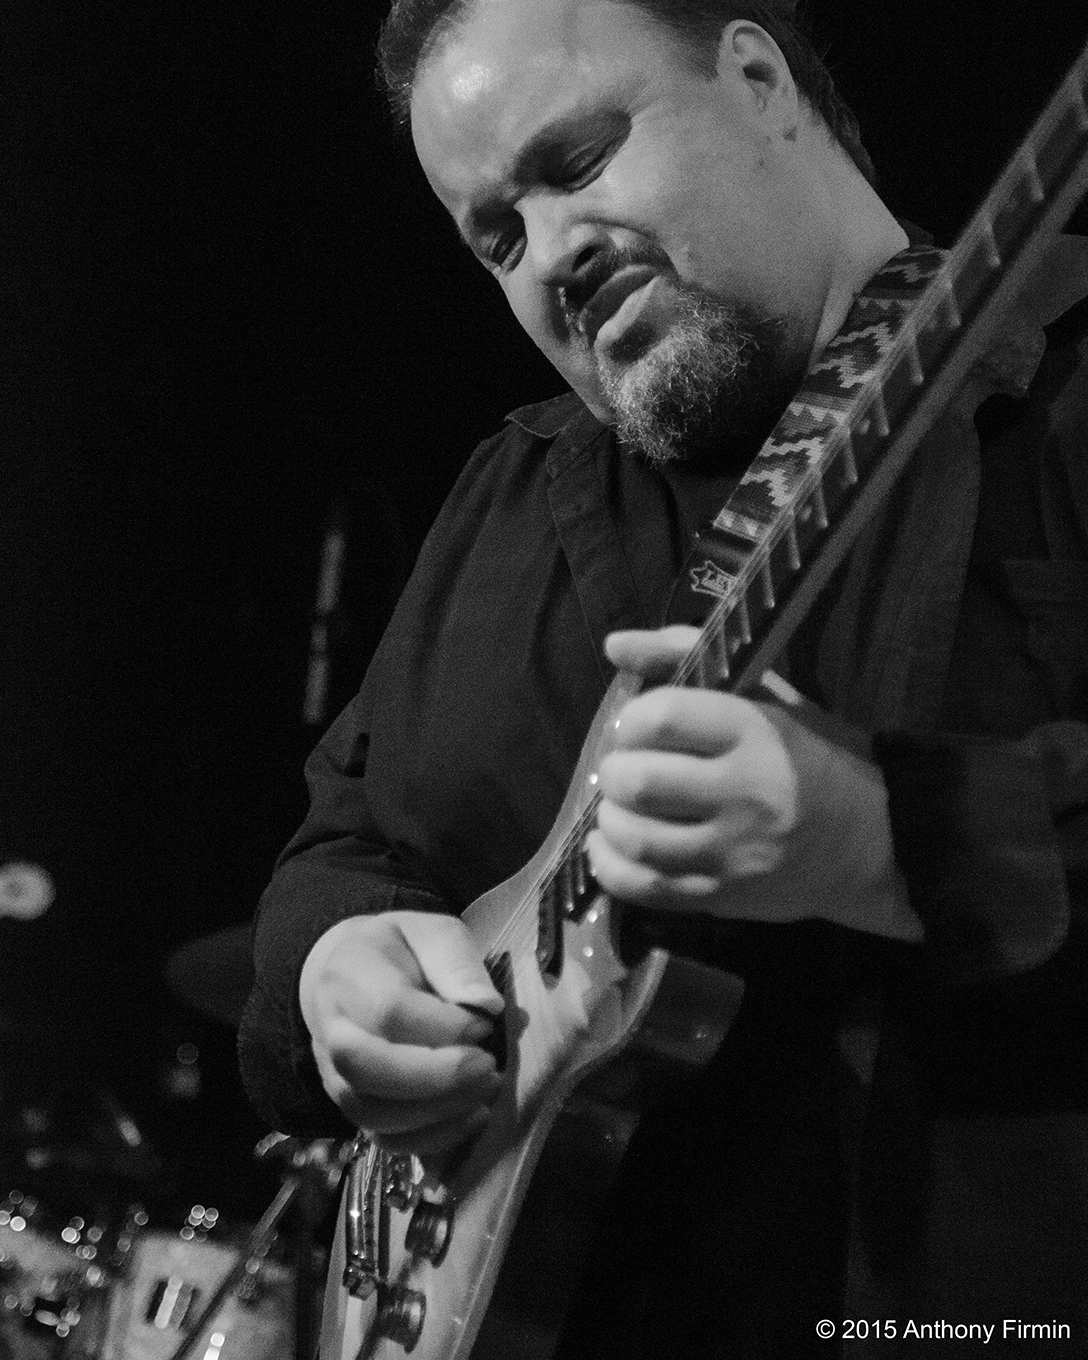 Steve Rothery Band, Band On The Wall, Manchester, 4/7/15